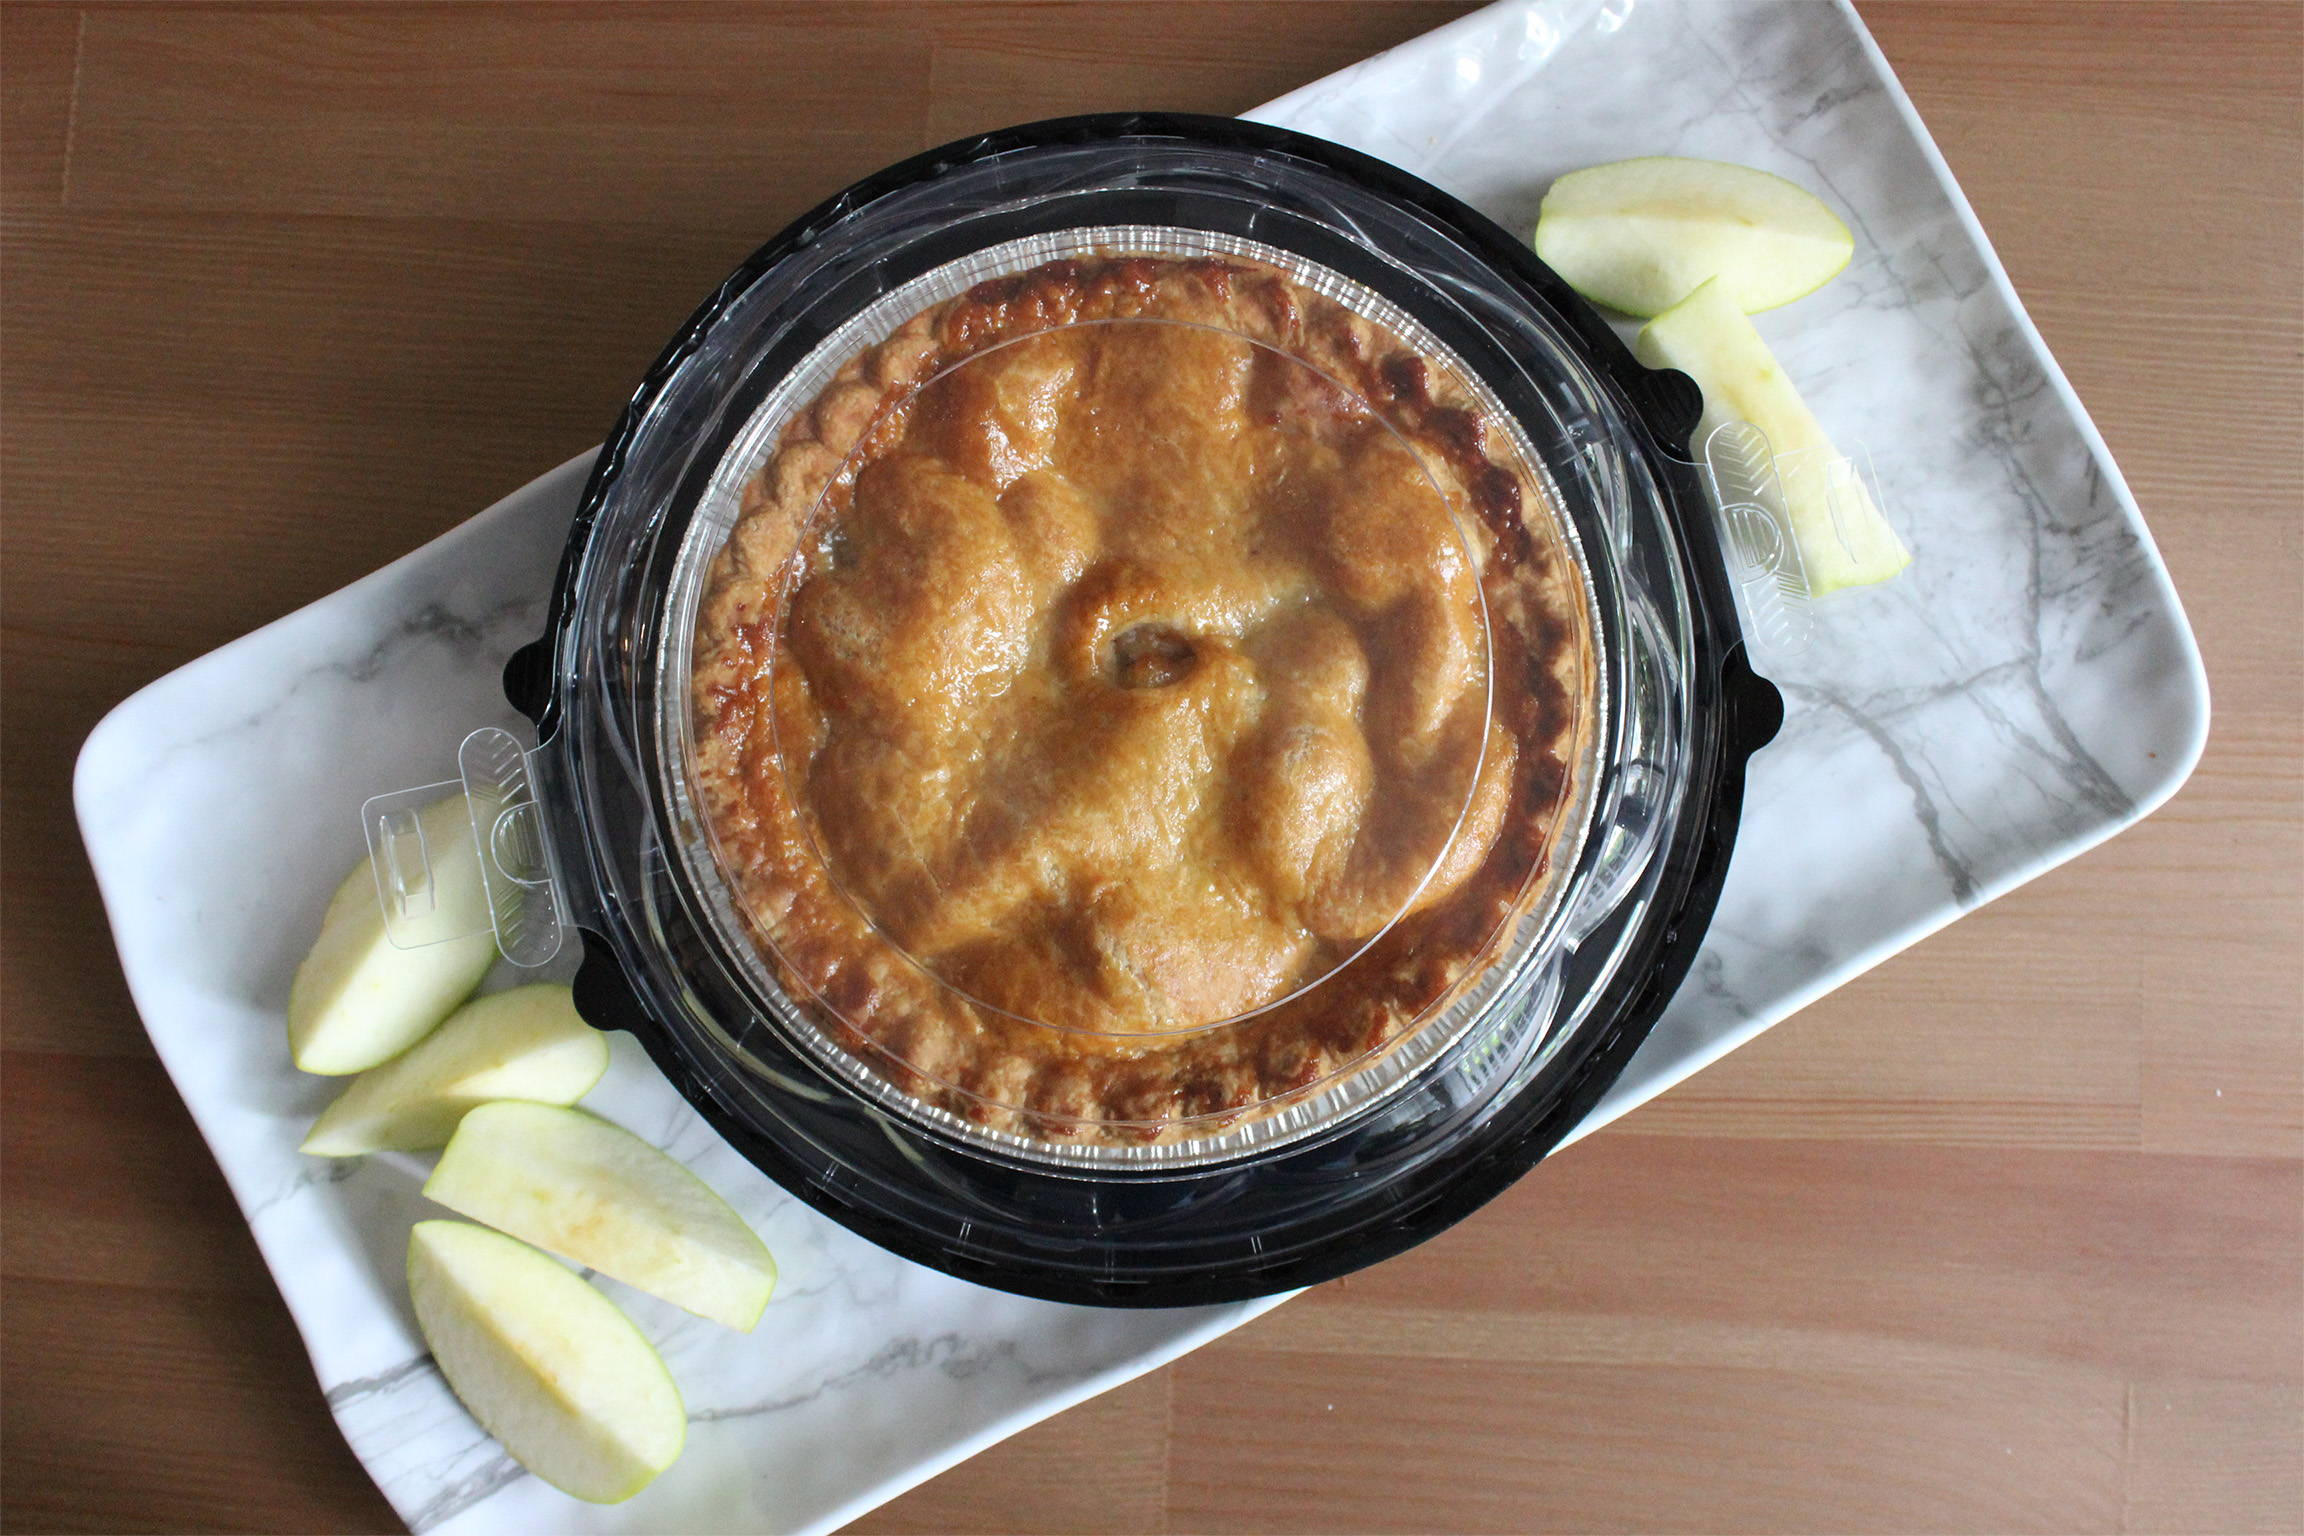 compostable pie container by Canadian bioplastic company